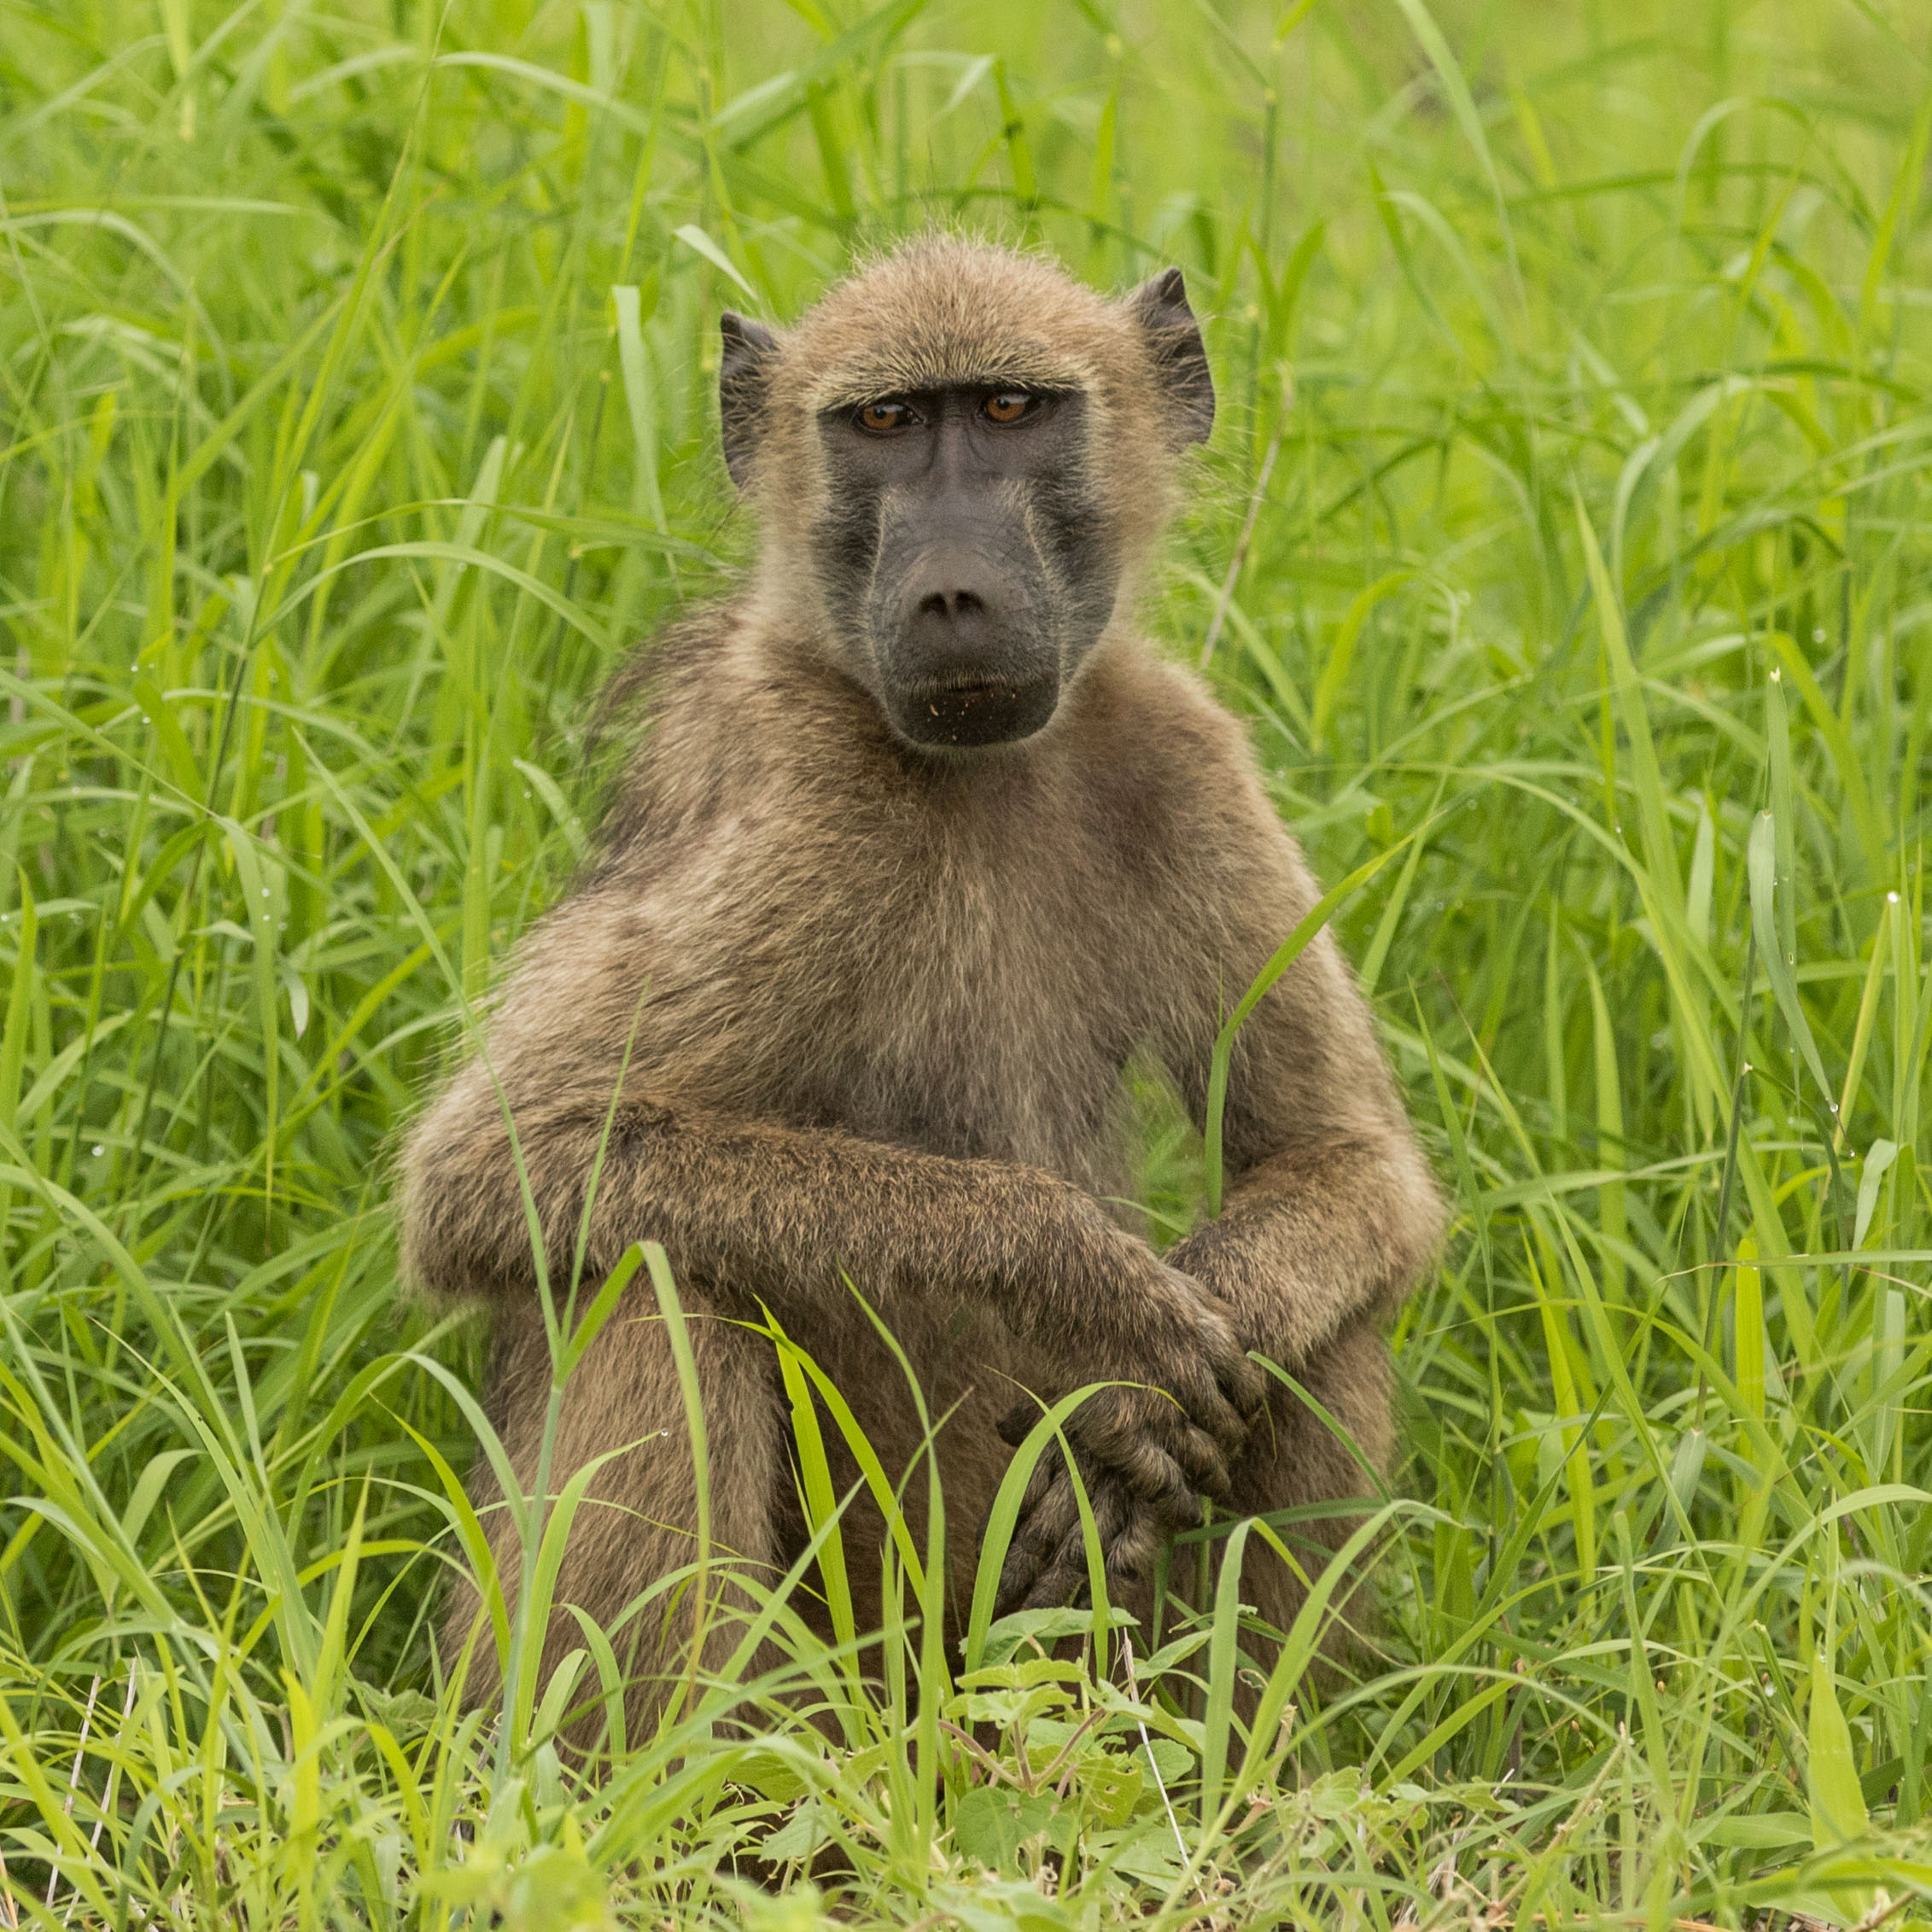 A chacma baboon sits in the lush green summer grasses.